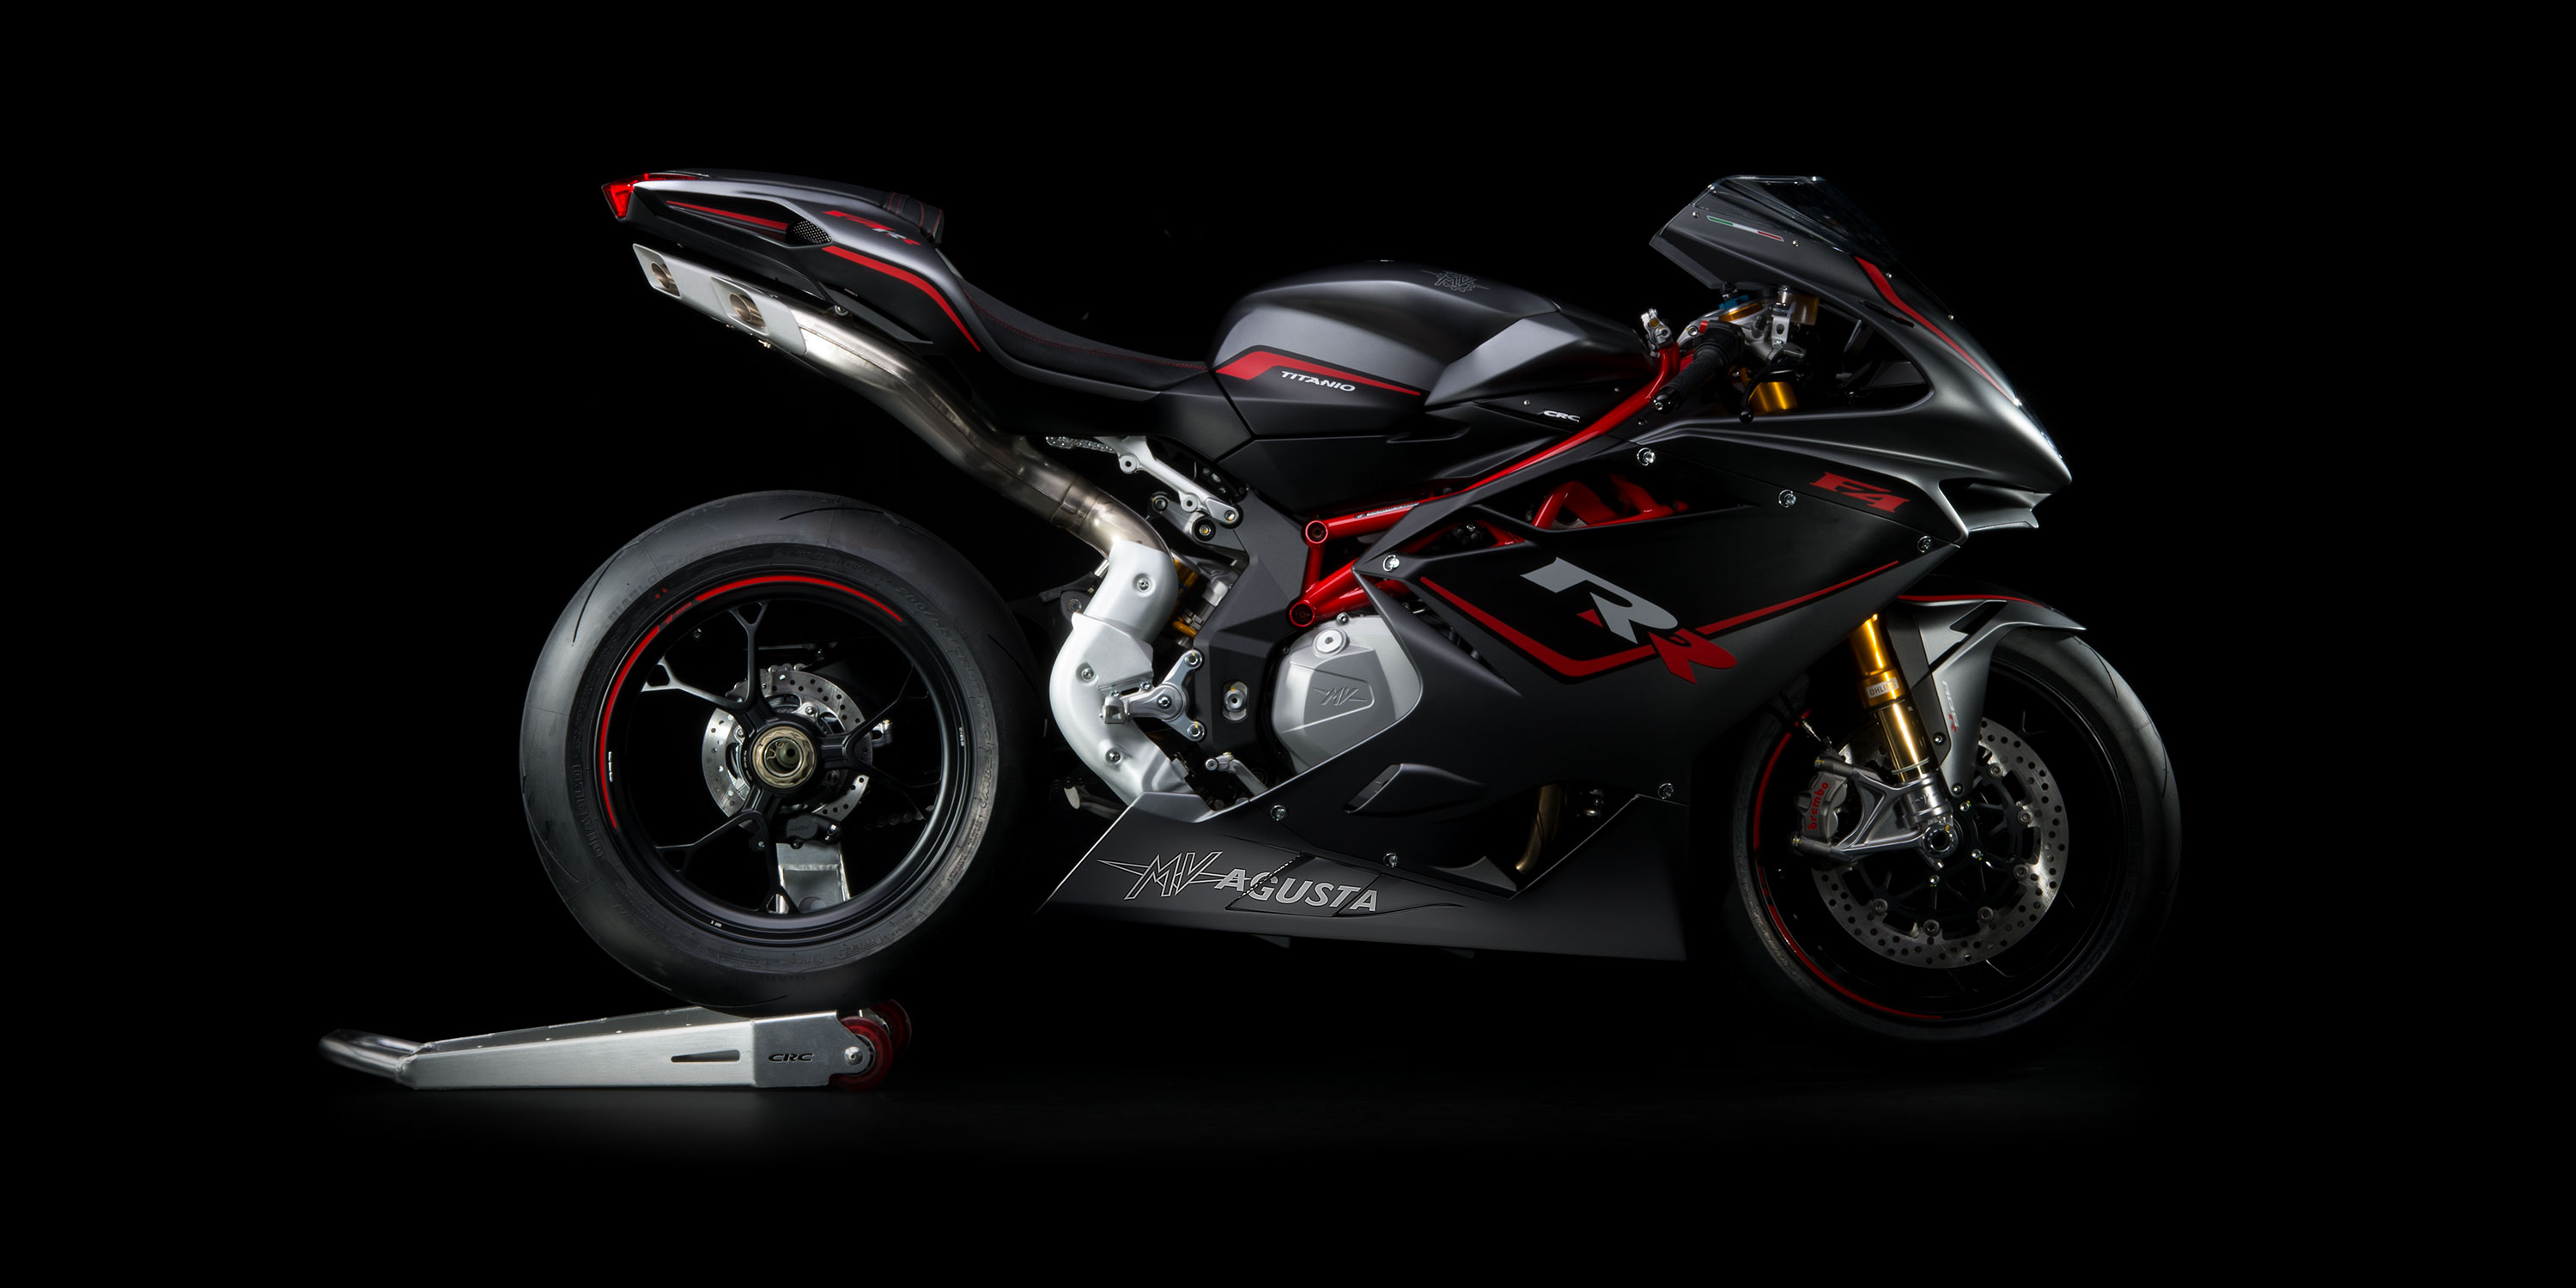 2016 Mv Agusta F4 Rr Reviews Price Specification